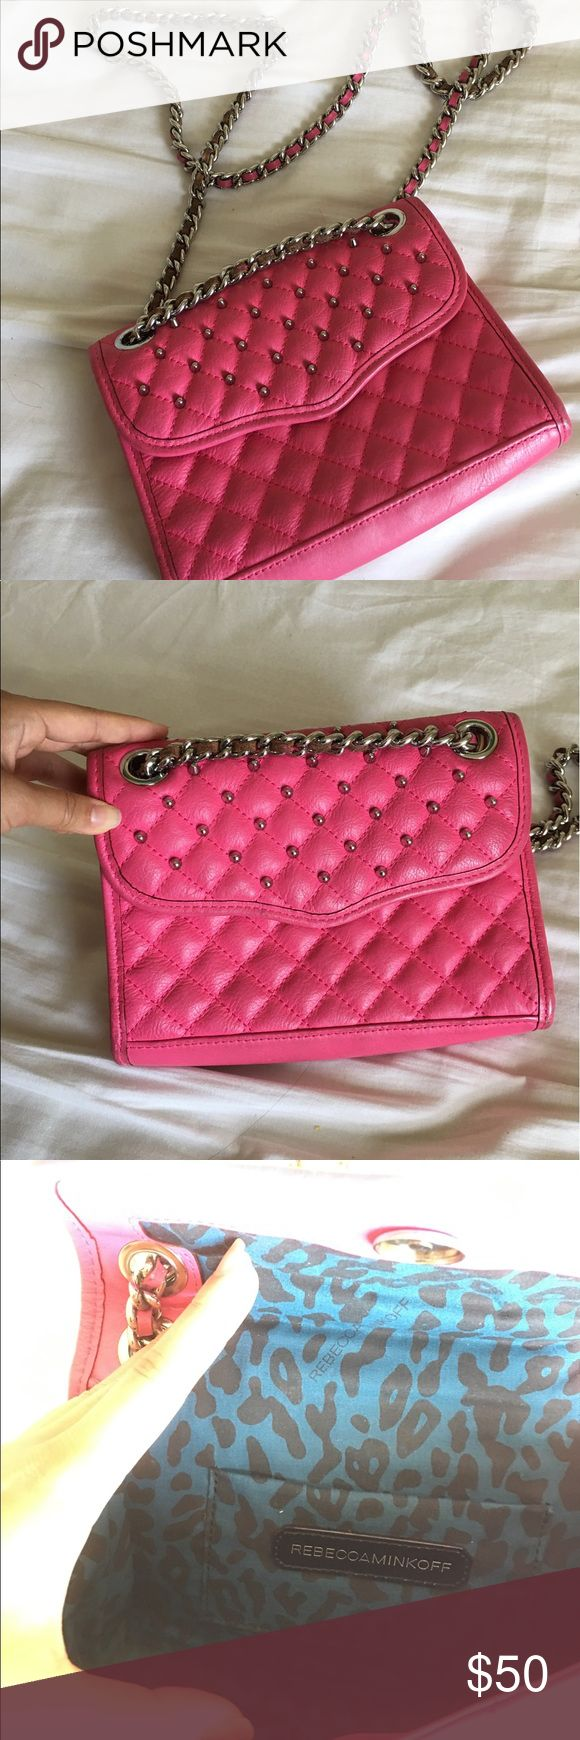 Rebecca Minkoff Mini MAC studded This rock-star inspired, HOT pink chic Mini Mac is perfect for going out. It has normal wear on it but looks very new. All of the studs are attached and it's ready for going out! 💃🏻 Rebecca Minkoff Bags Mini Bags